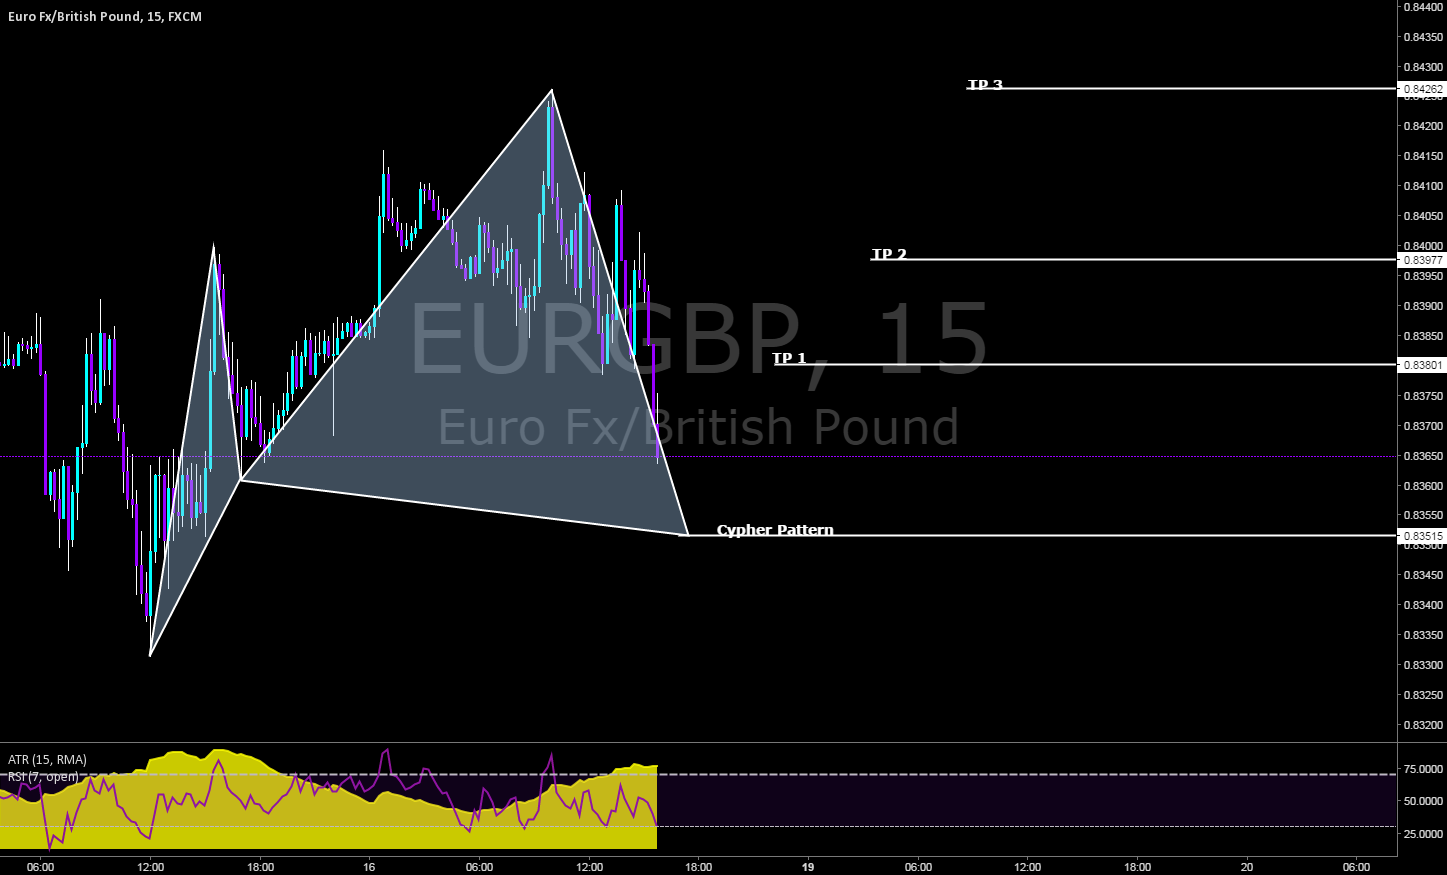 Intra here on the EURGBP with extended TP